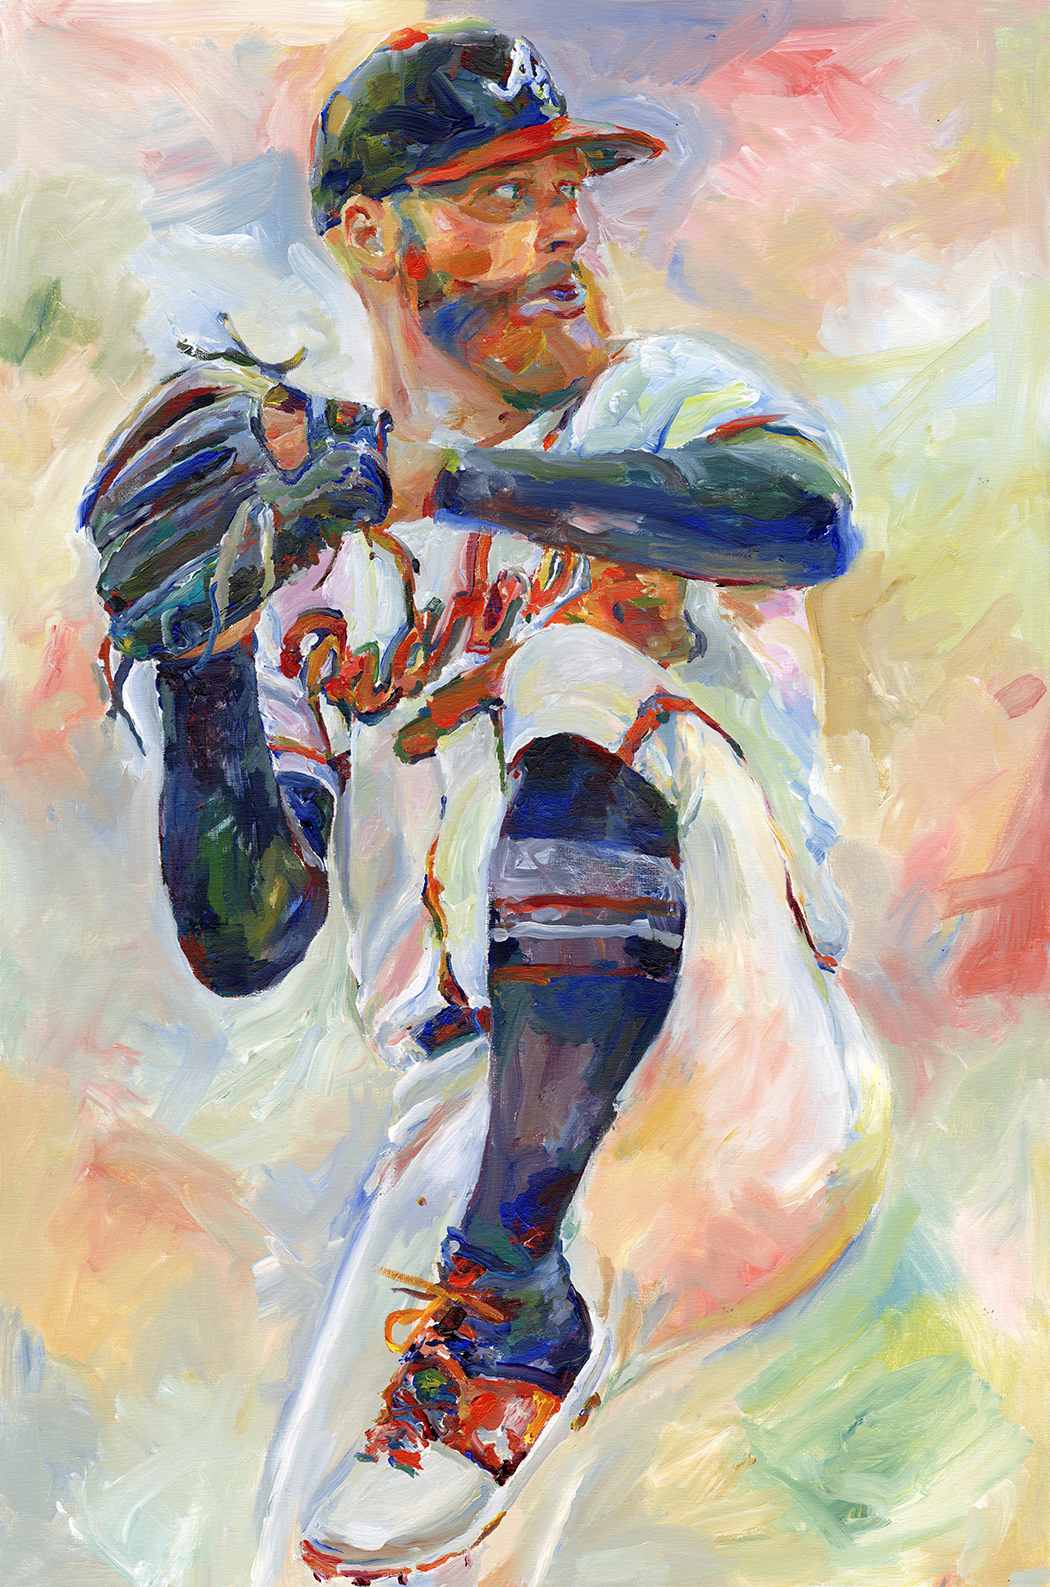 """Folty 25"" by Richard Sullivan, Acrylic on canvas, 24x36in, 2019, POR"